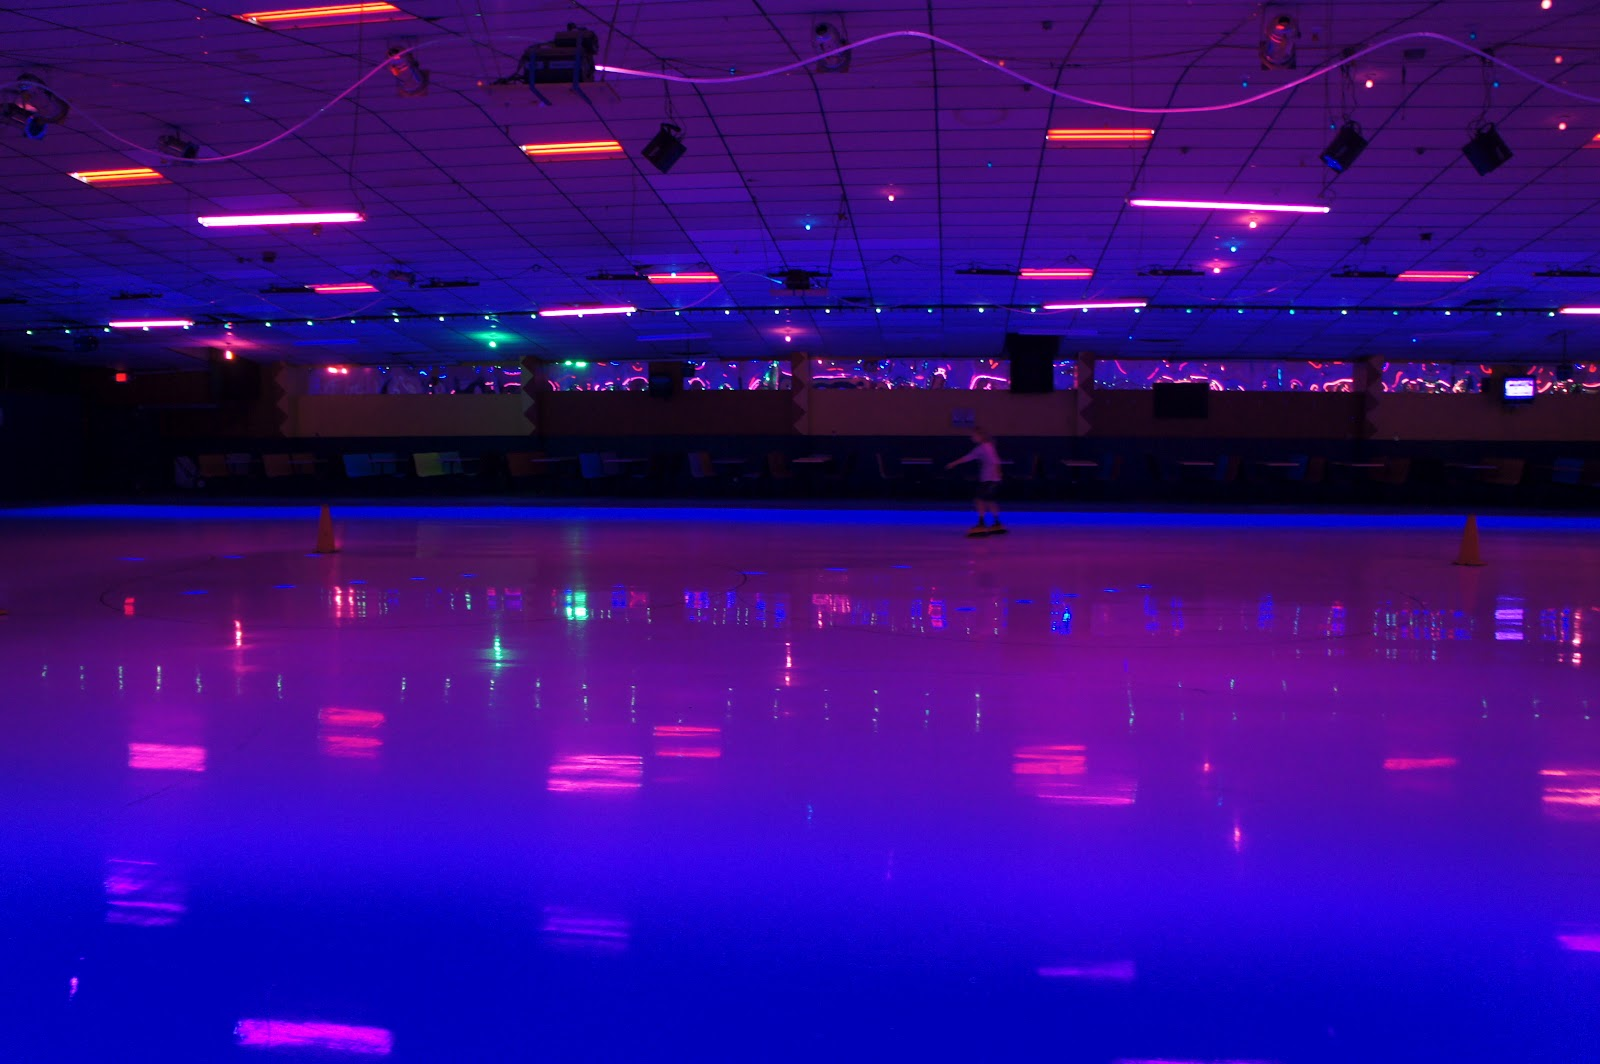 Roller skating rink music - Anyways Roller Skating Was Just Like I Remembered From When I Was A Teenager Dark Dirty Carpet Tacky Florecent Paint On The Walls